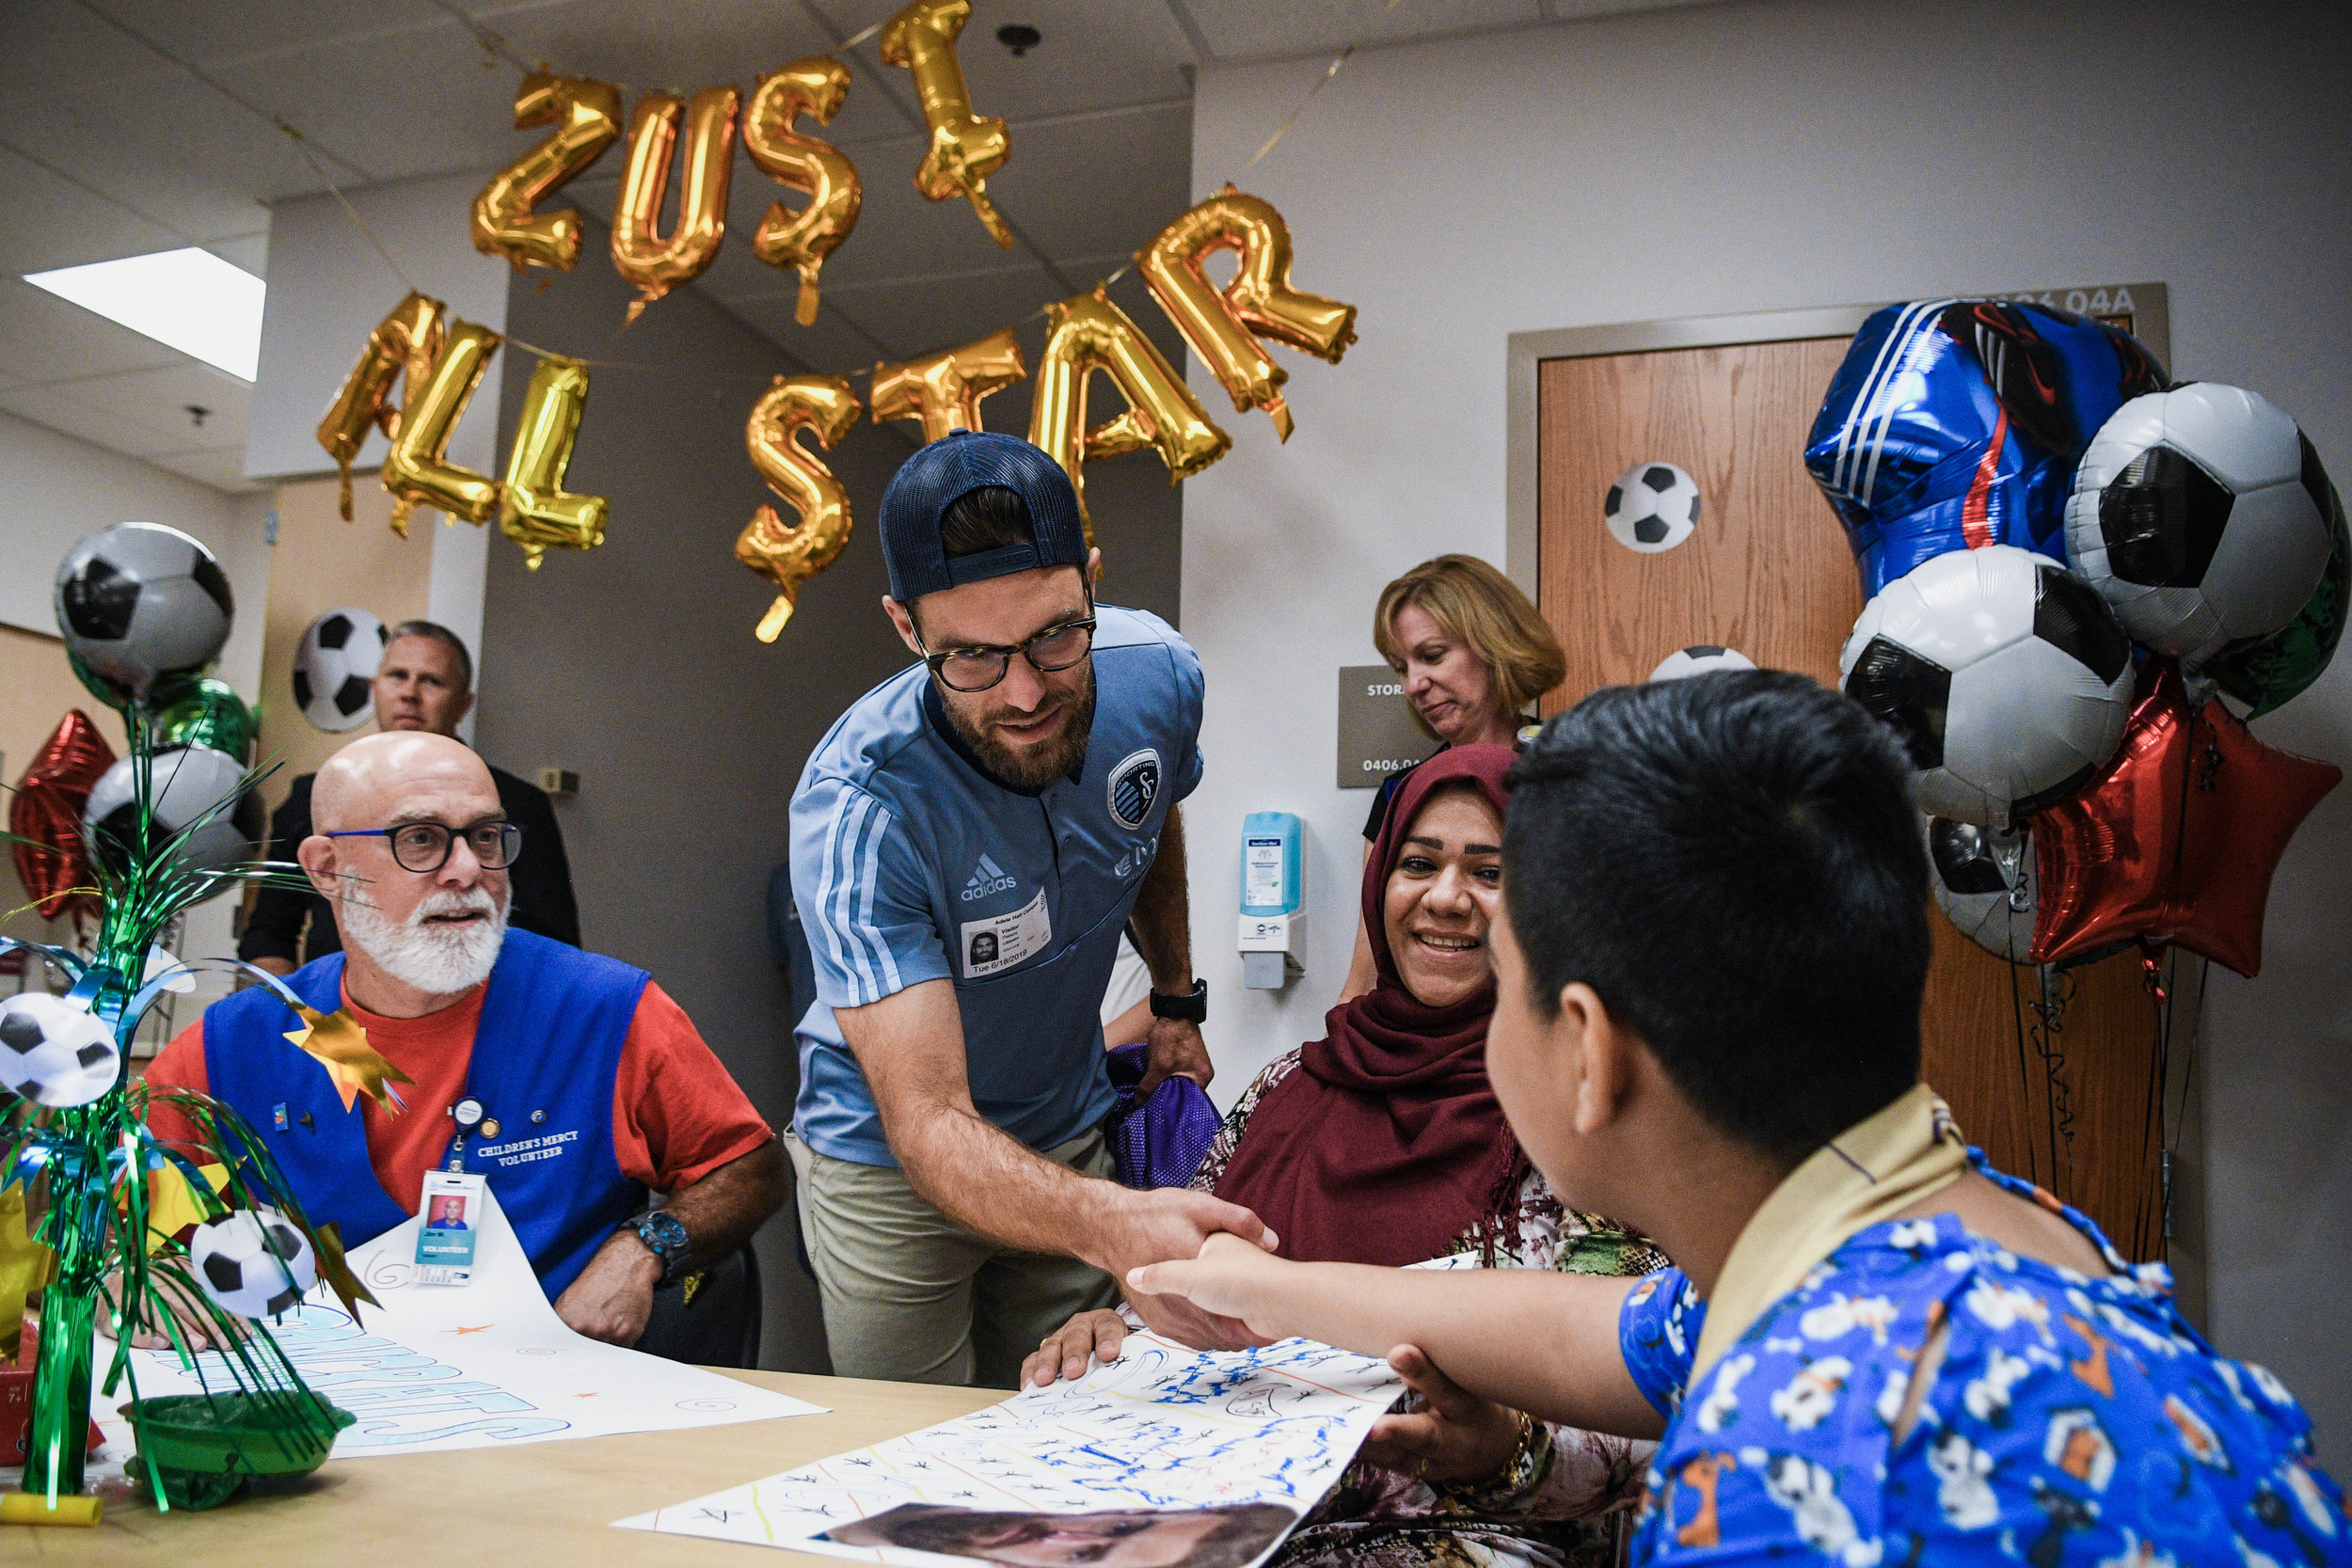 Sporting Kansas City defender Graham Zusi shakes hands with a patient after he was surprised at Children's Mercy Hospital in Kansas City with the news he was voted on to the 2019 Major League Soccer All-Star team. This will be Zusi's 7th appearance on the all-star roster.